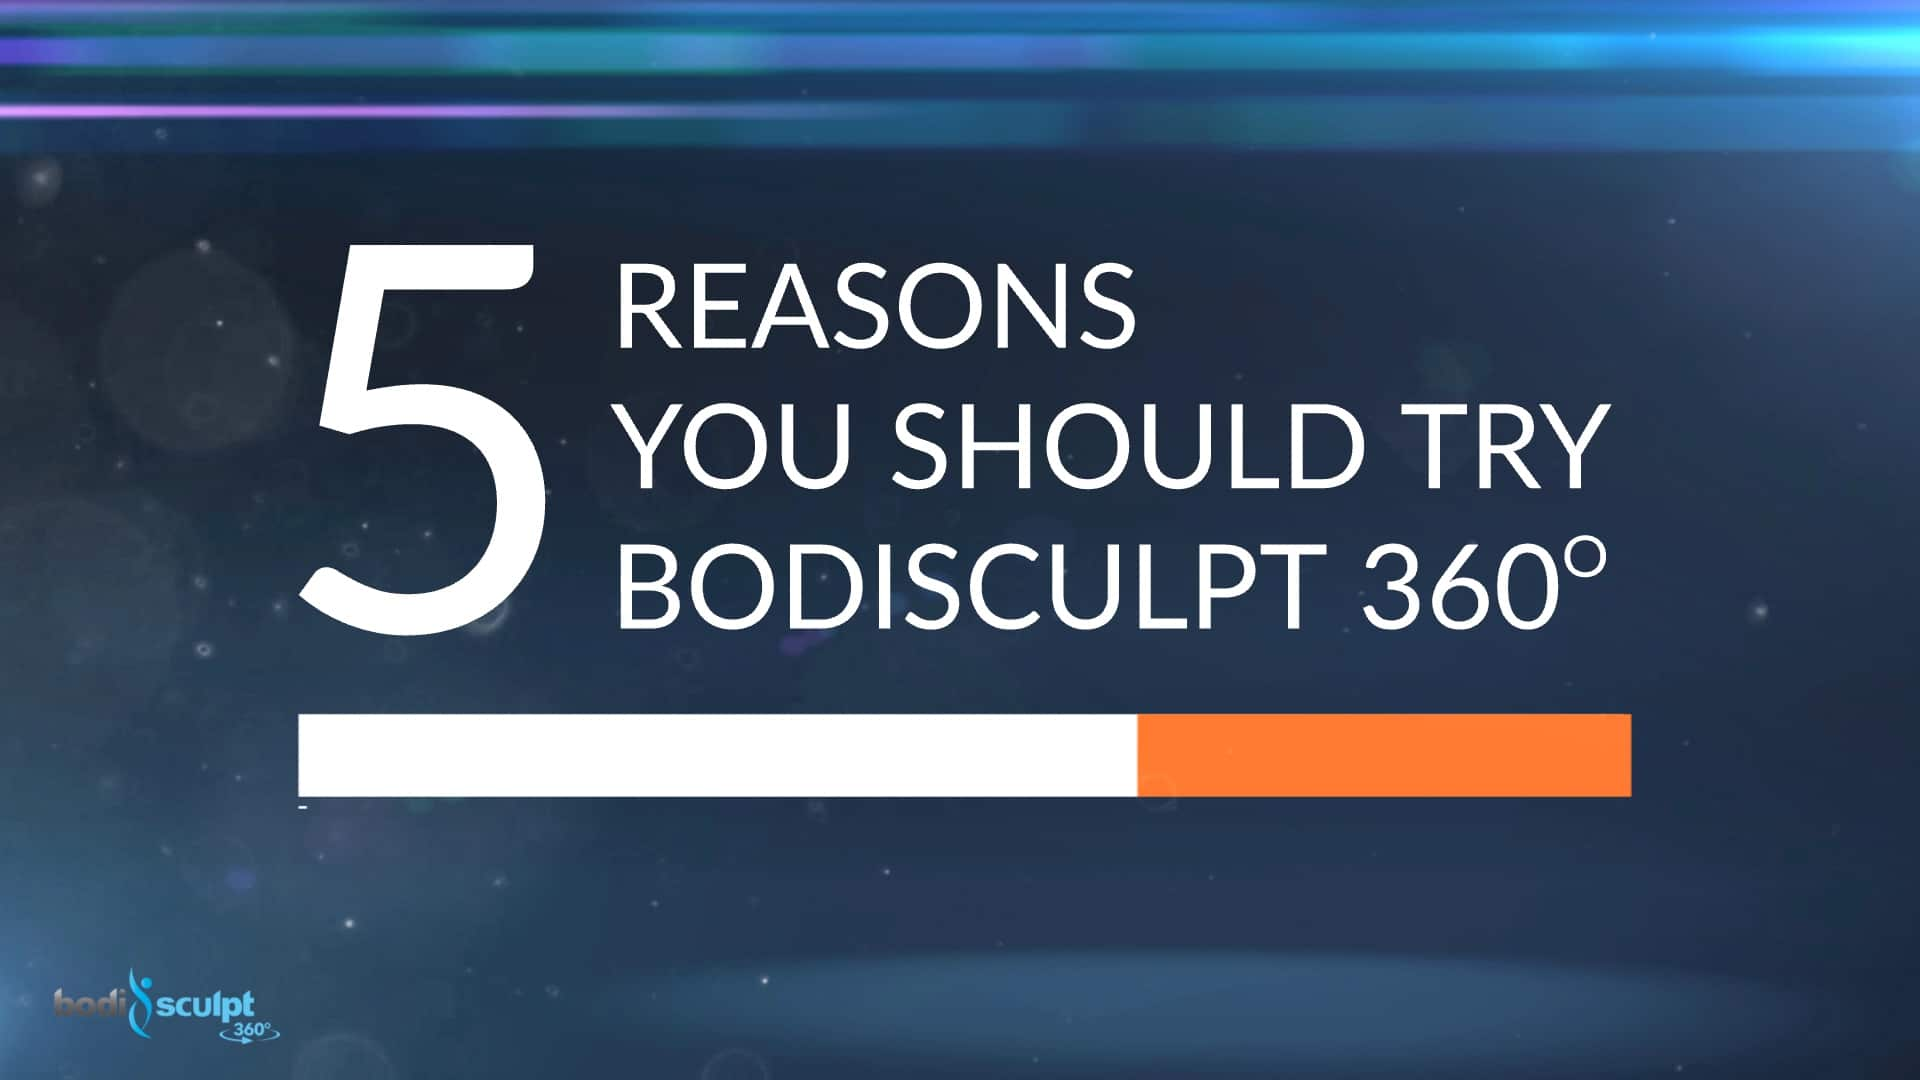 The 5 Reasons You Should Try Fat Freezing With Bodisculpt 360